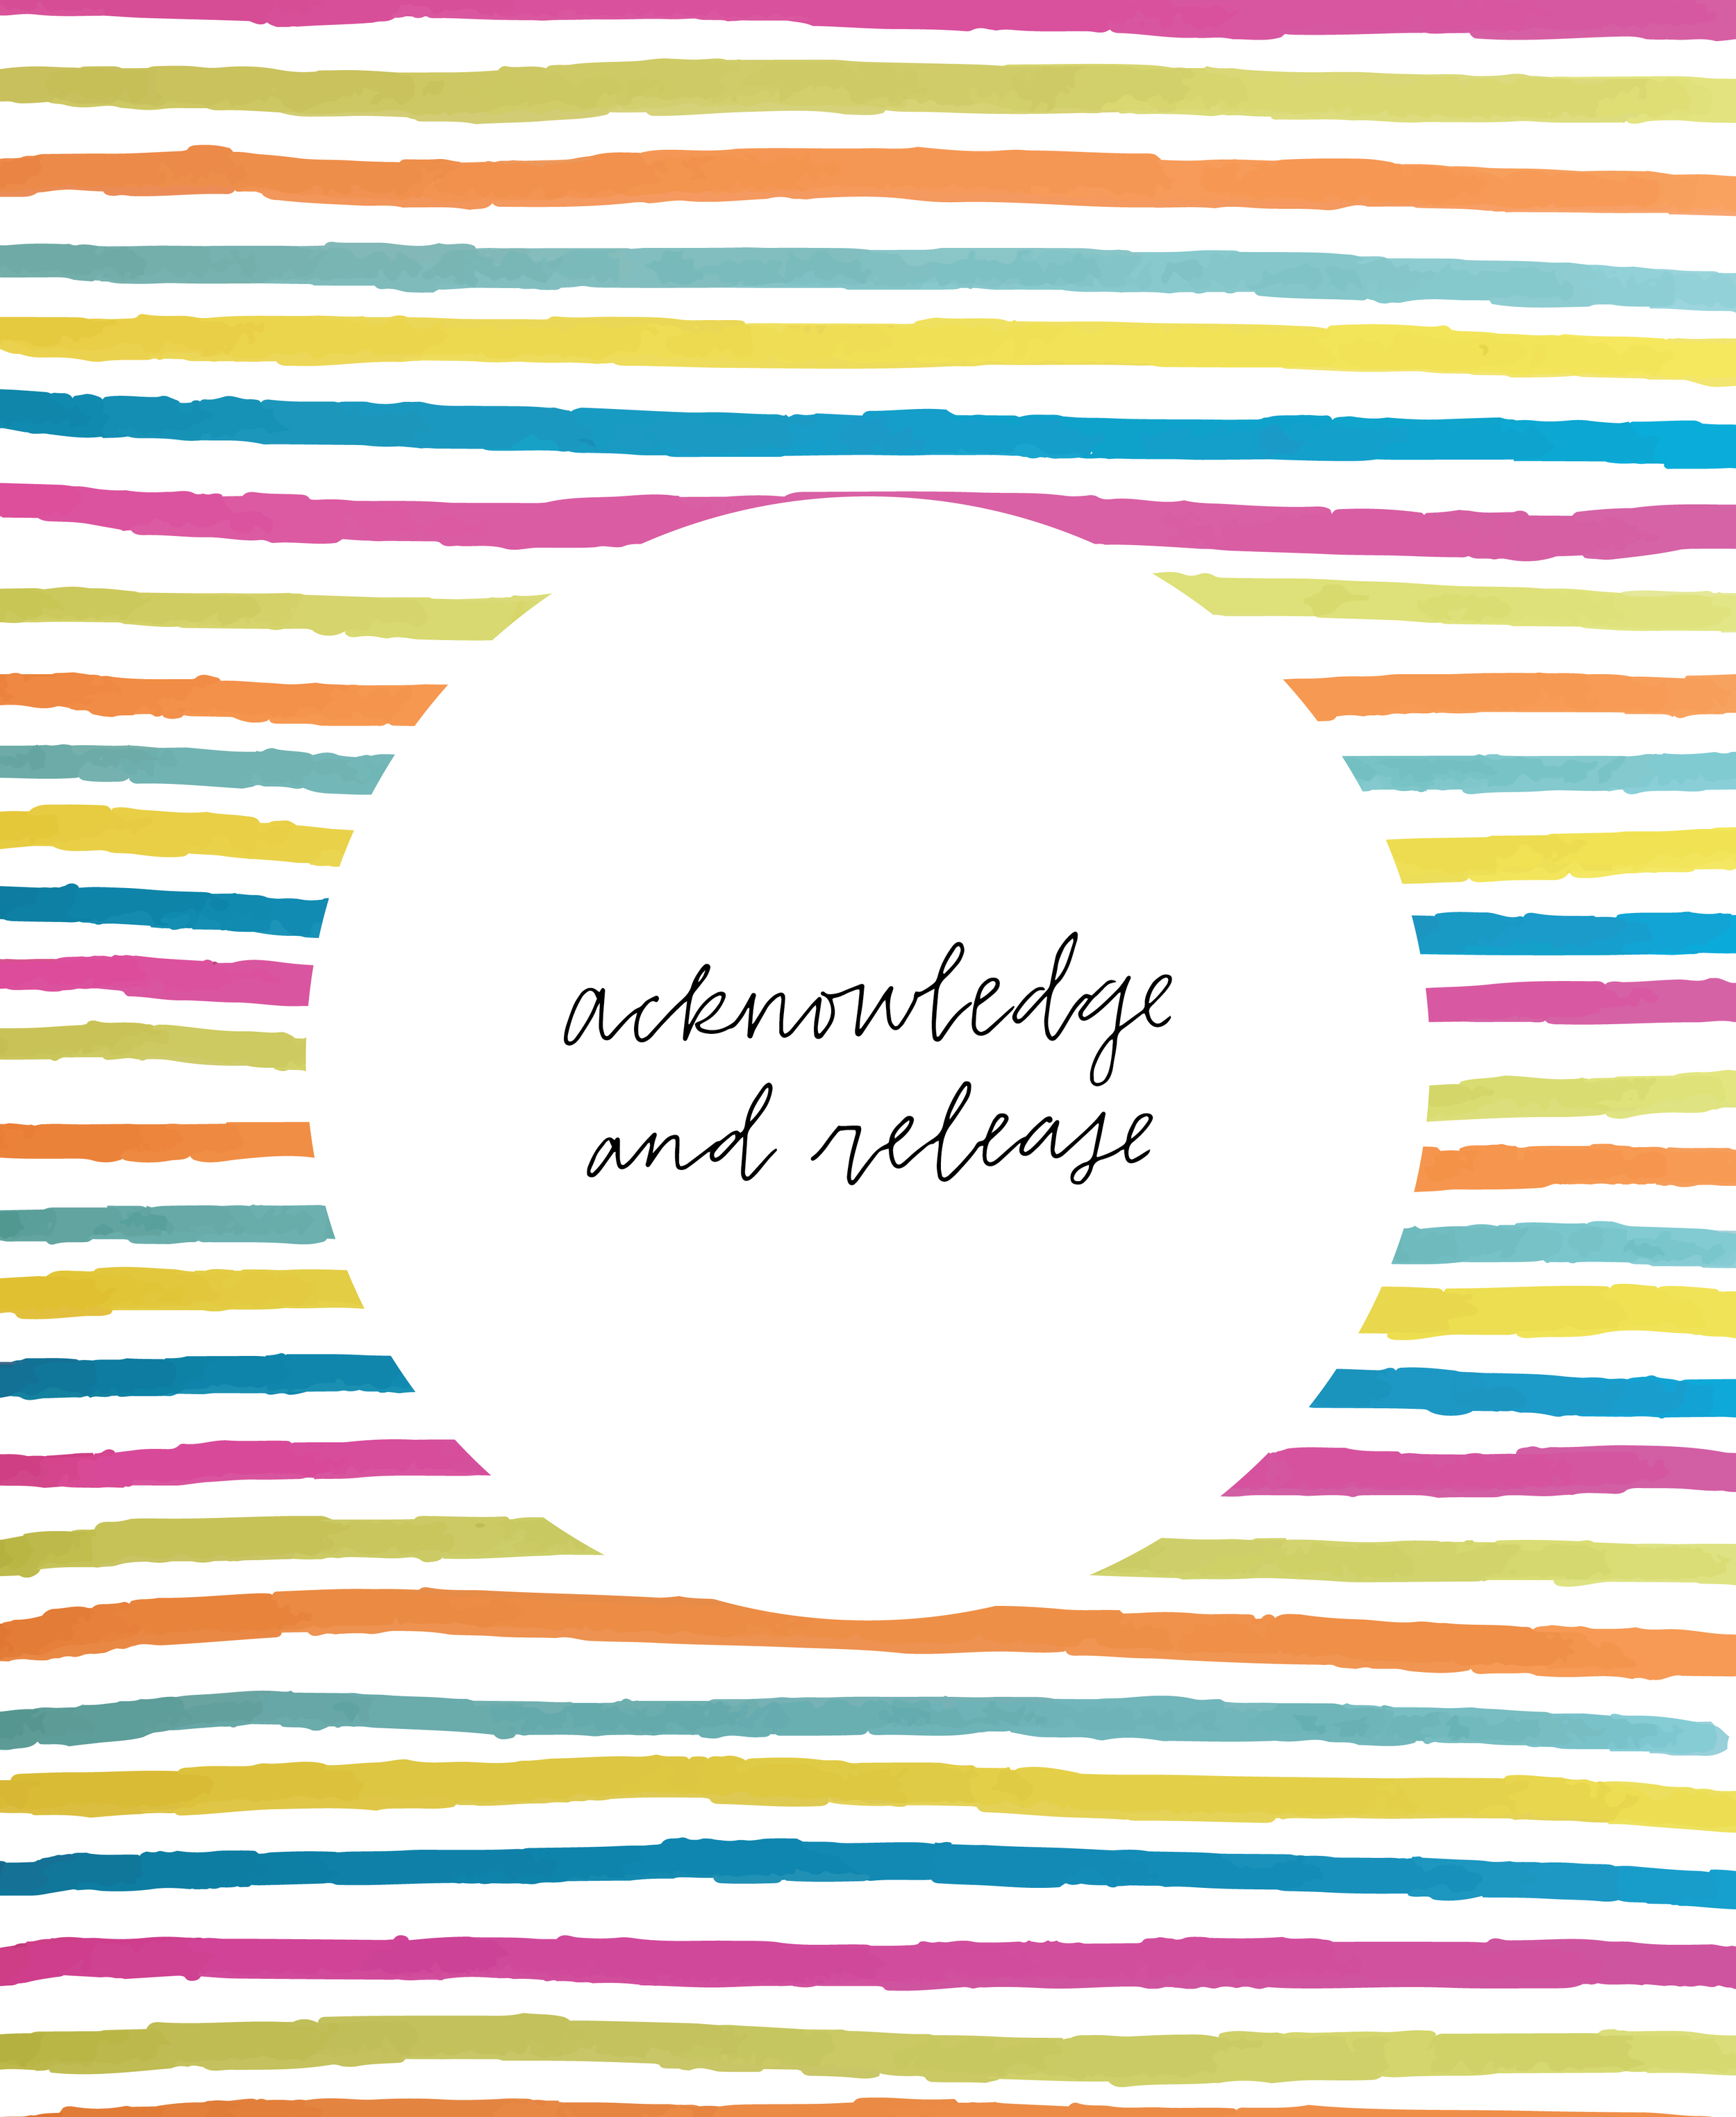 superfine-acknowledge-01.png